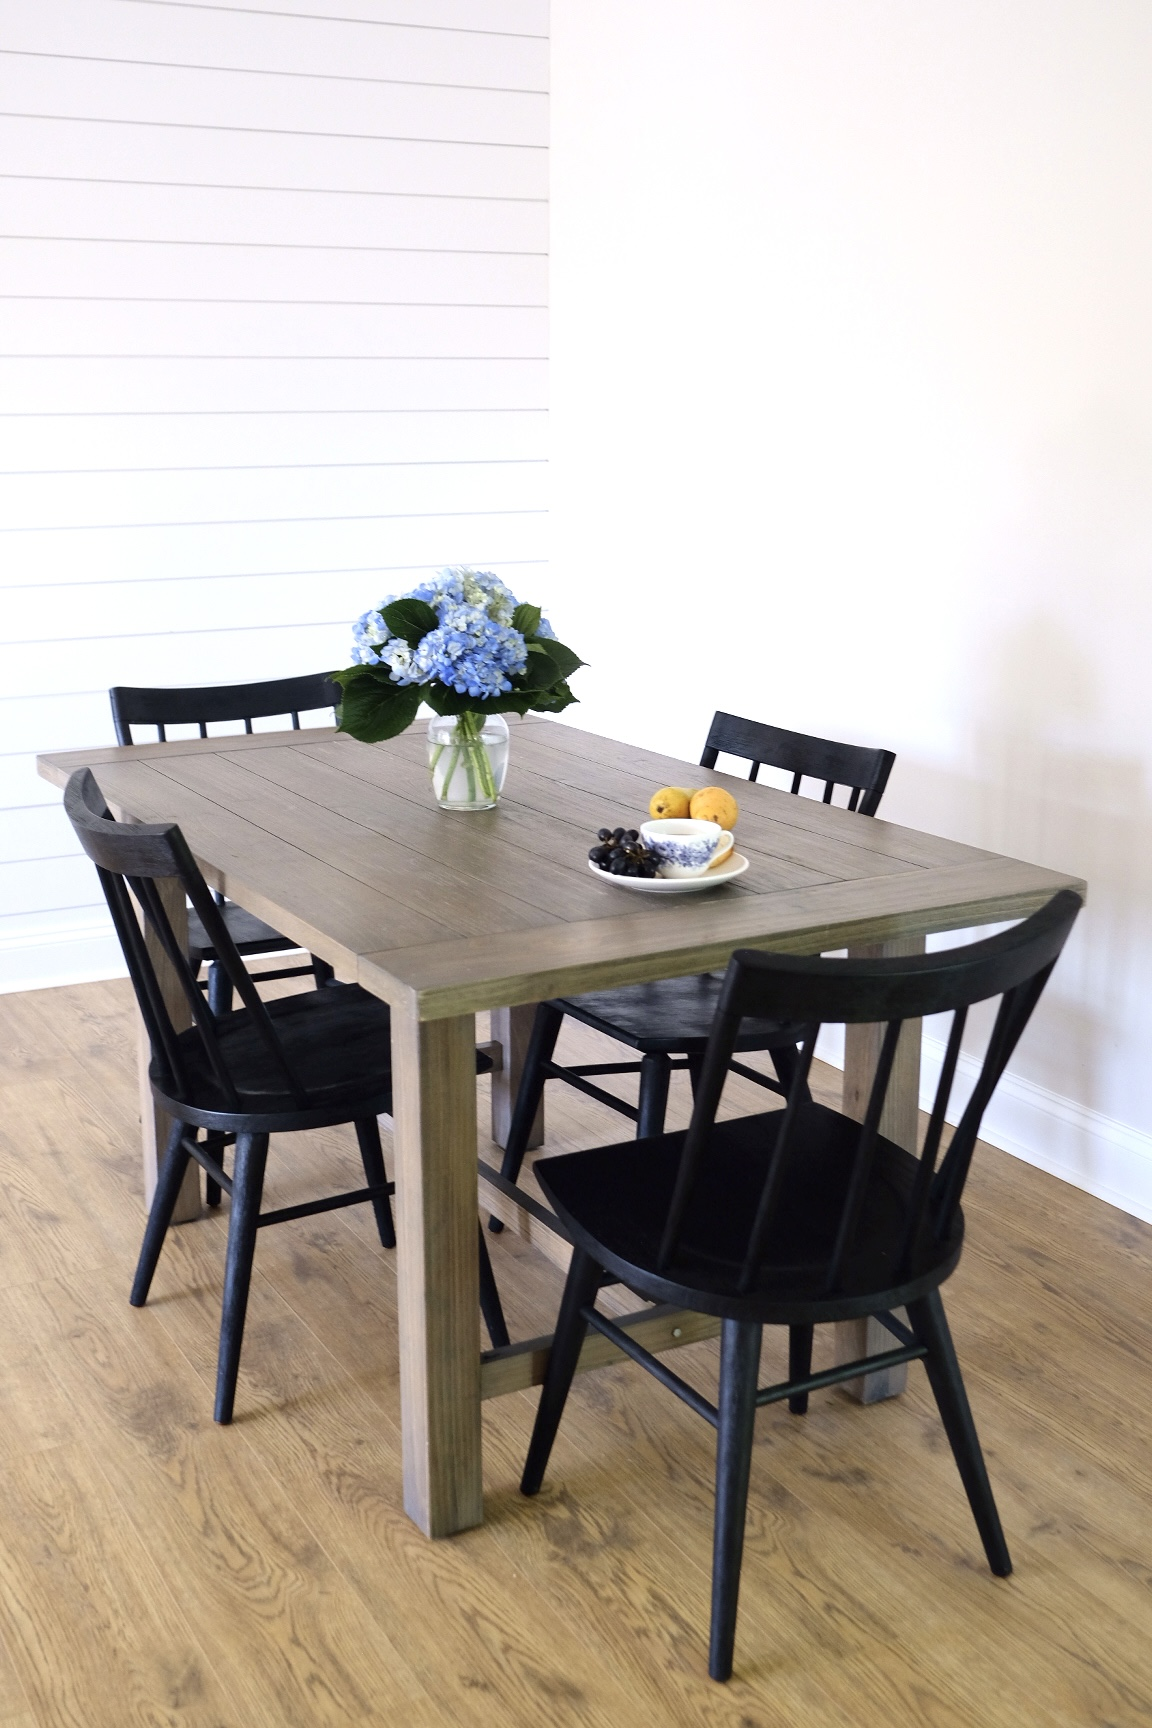 Black Farmhouse Style Dining Chairs and Table